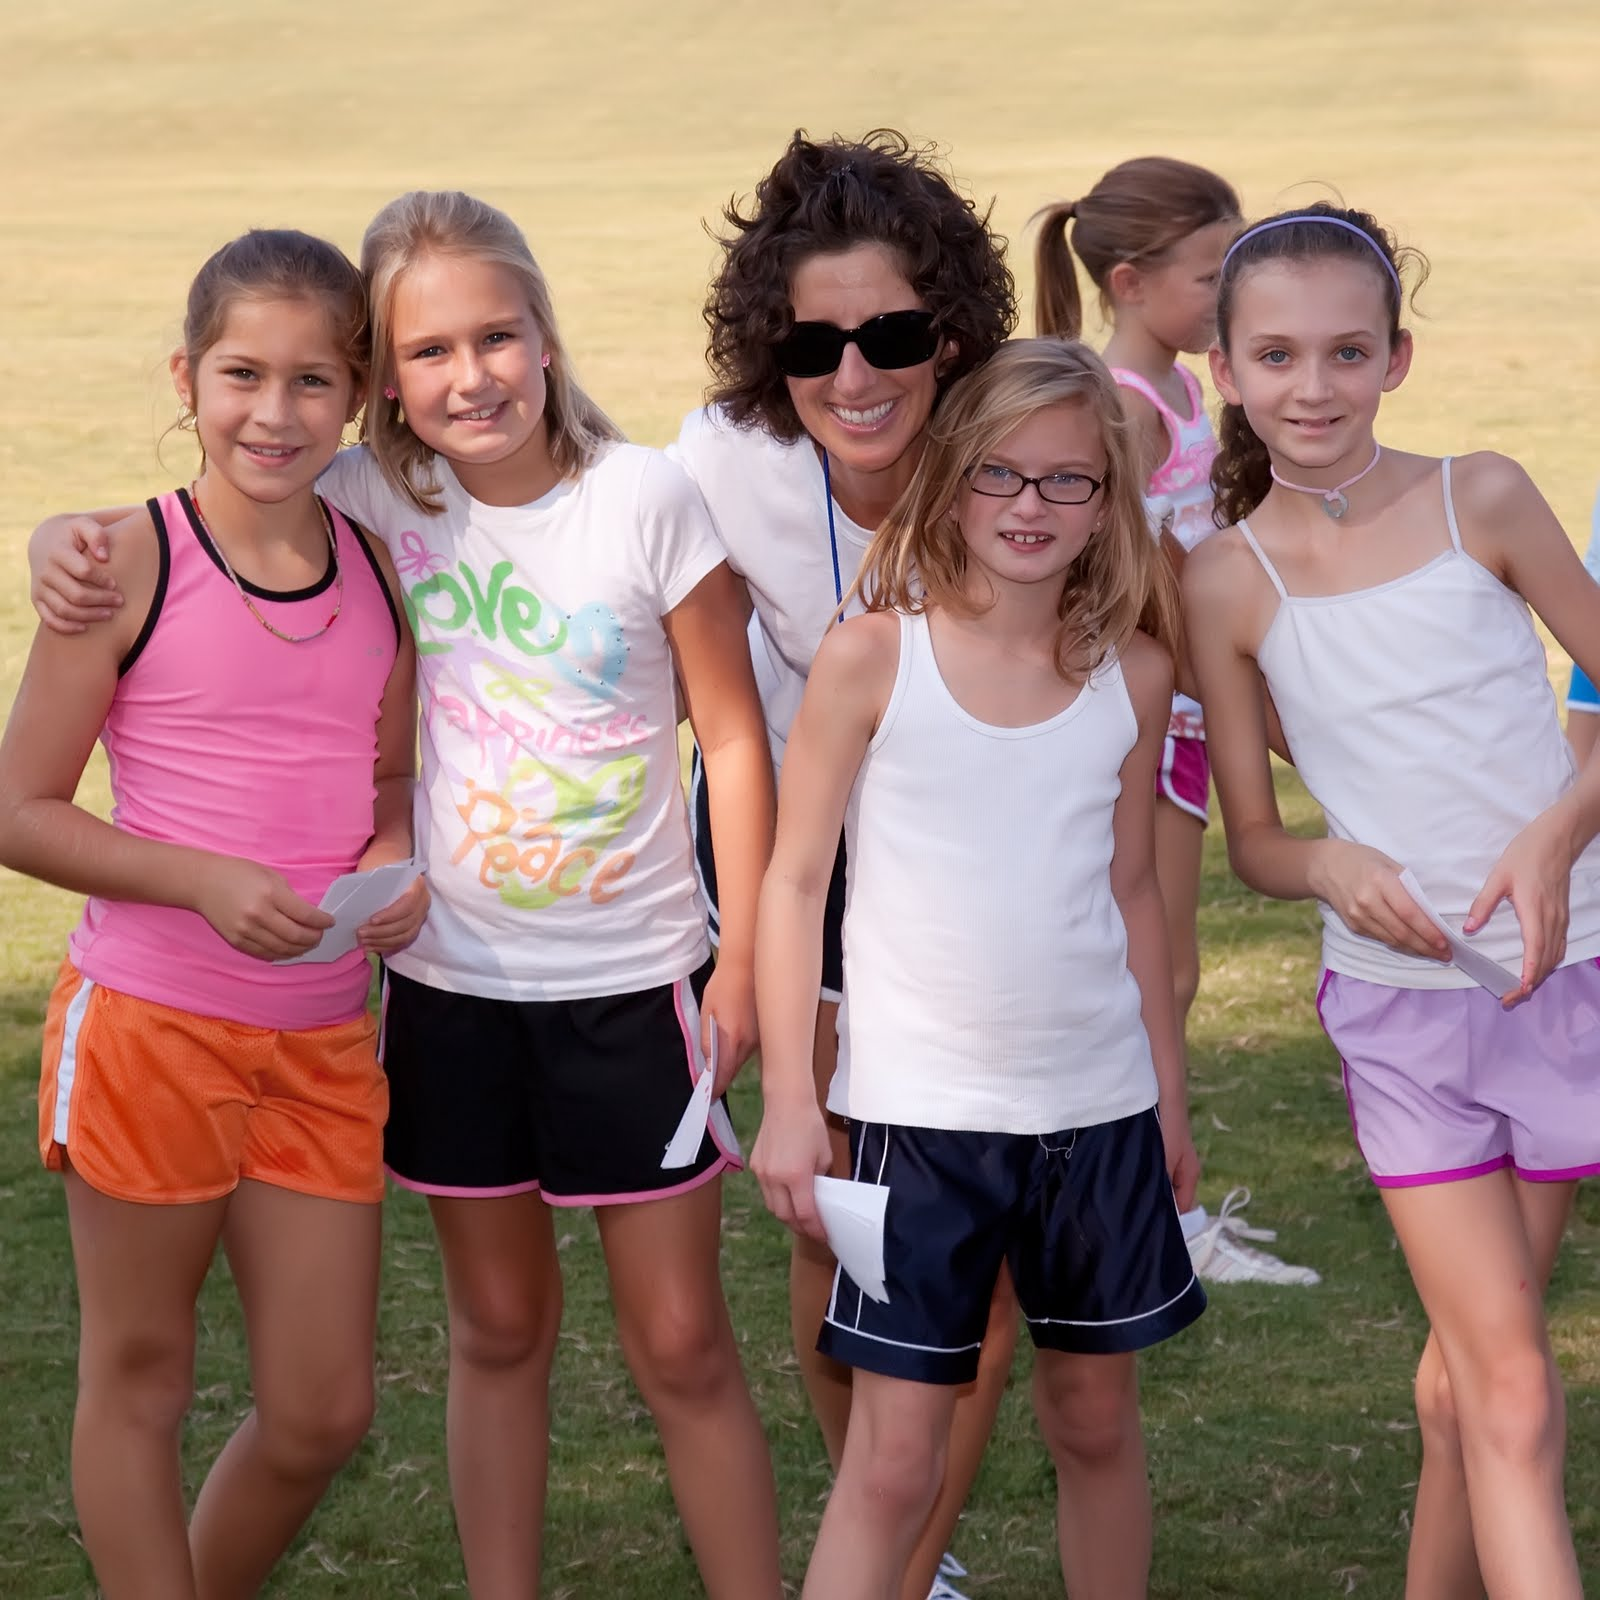 pre teen girls to develop self respect and healthy lifestyle through ...